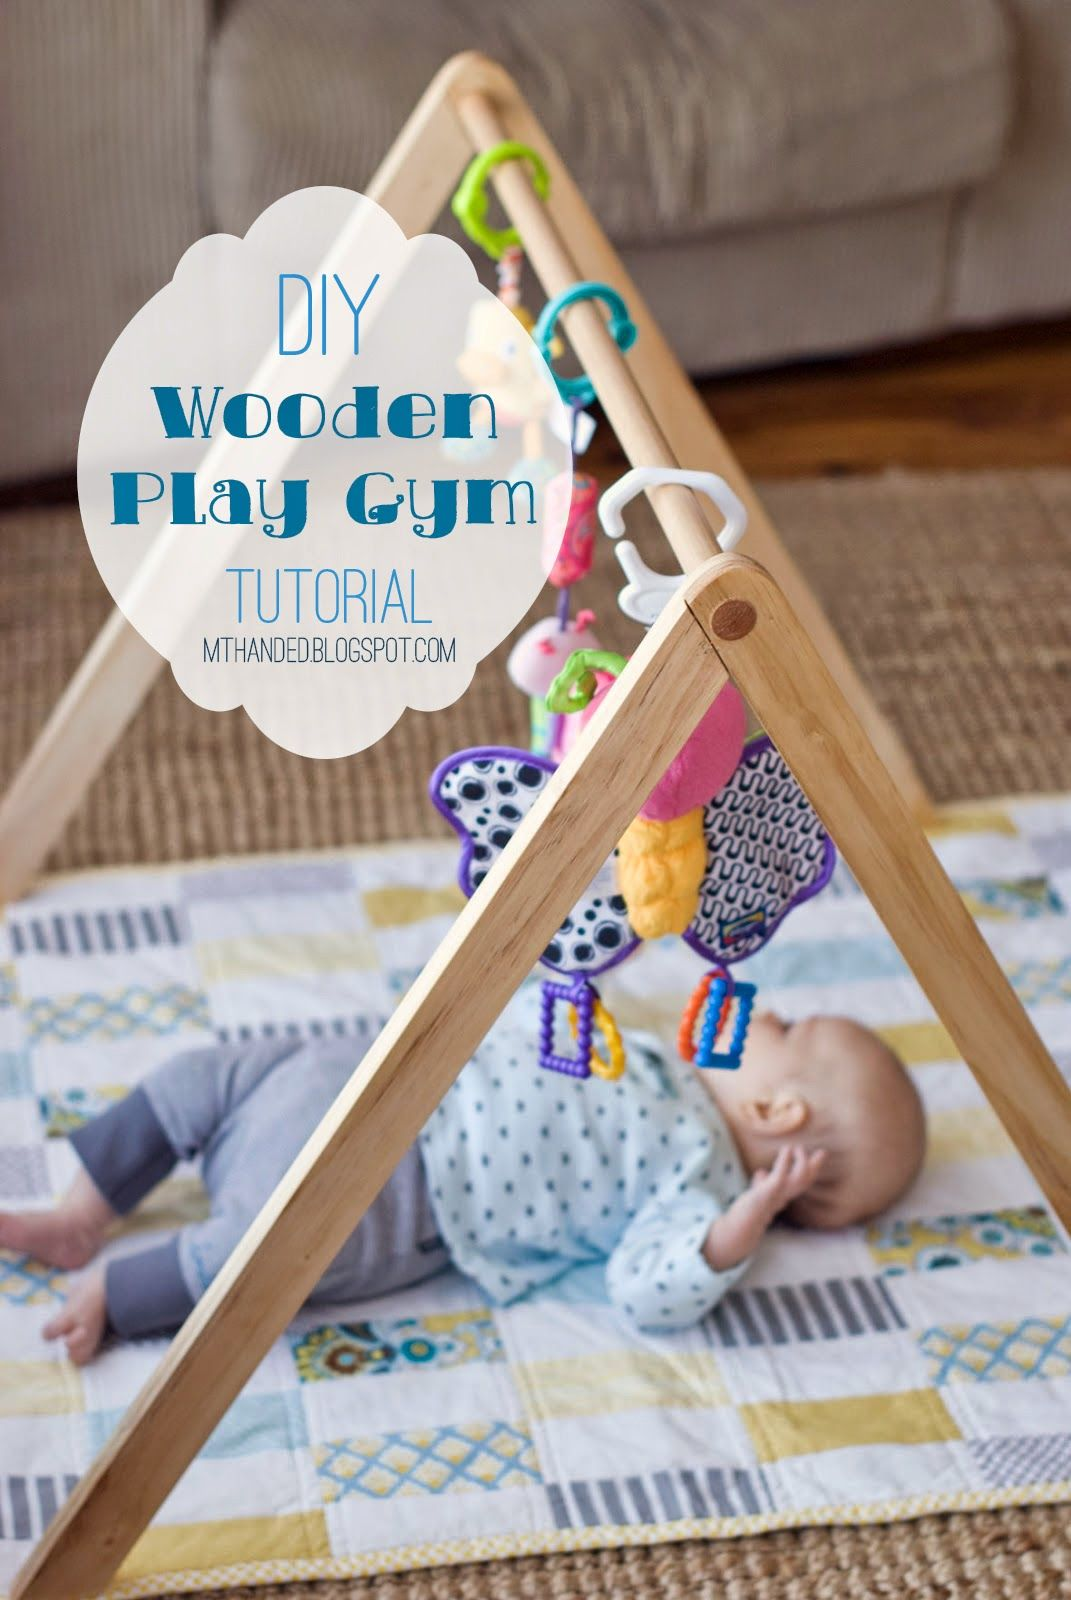 Crib gym for babies - Getting Ready For A Baby 22 Diy Projects To Craft For Your Newborn And Their Nursery